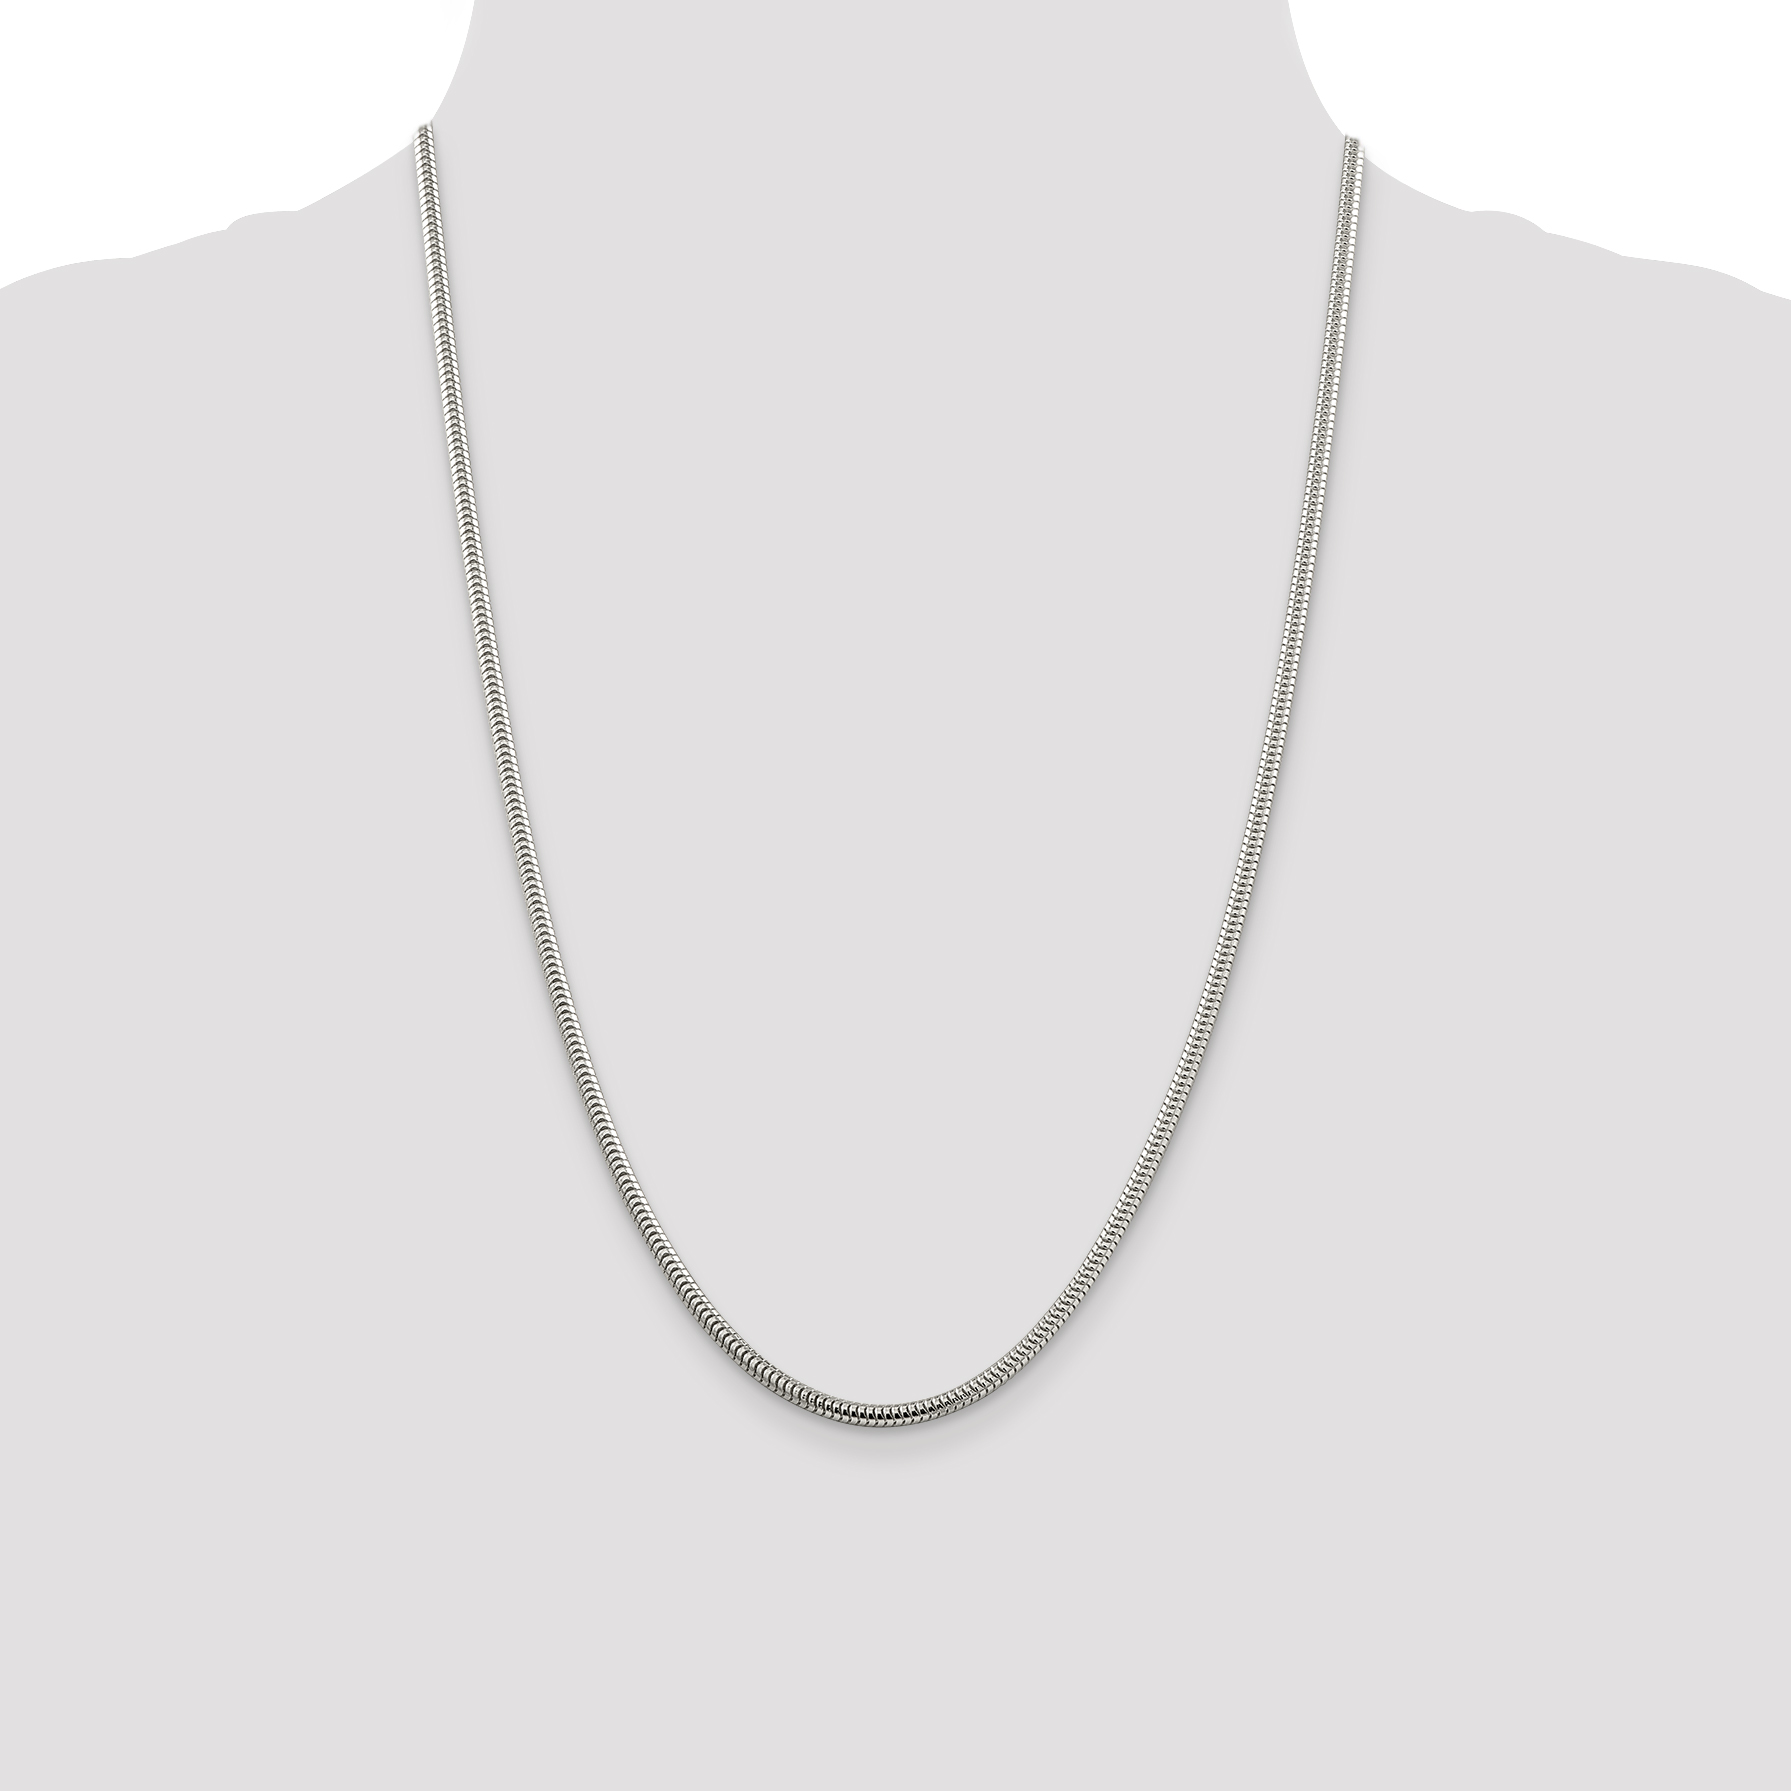 925 Sterling Silver 3mm Round Snake Chain Necklace 24 Inch Pendant Charm Fine Jewelry Gifts For Women For Her - image 4 de 5